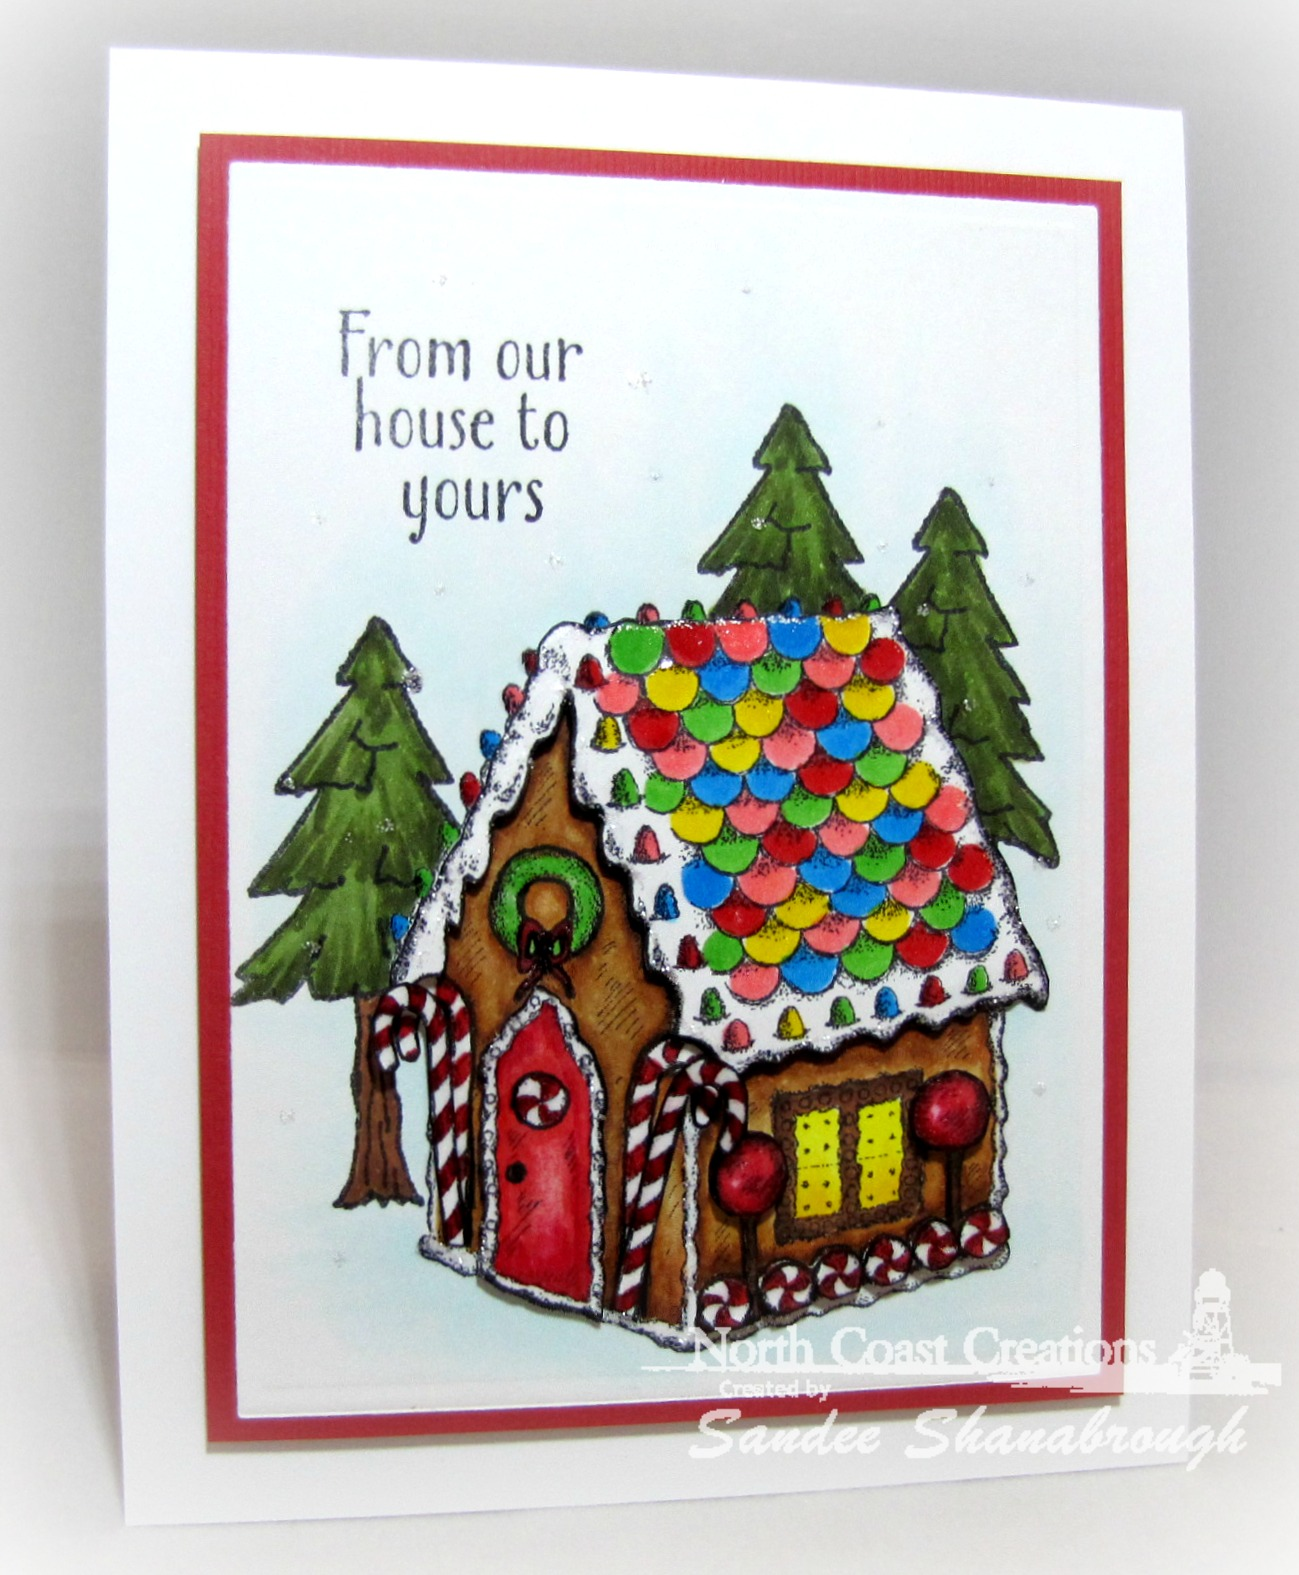 Stamps - North Coast Creations Sweet Christmas Wishes, Happy Camper